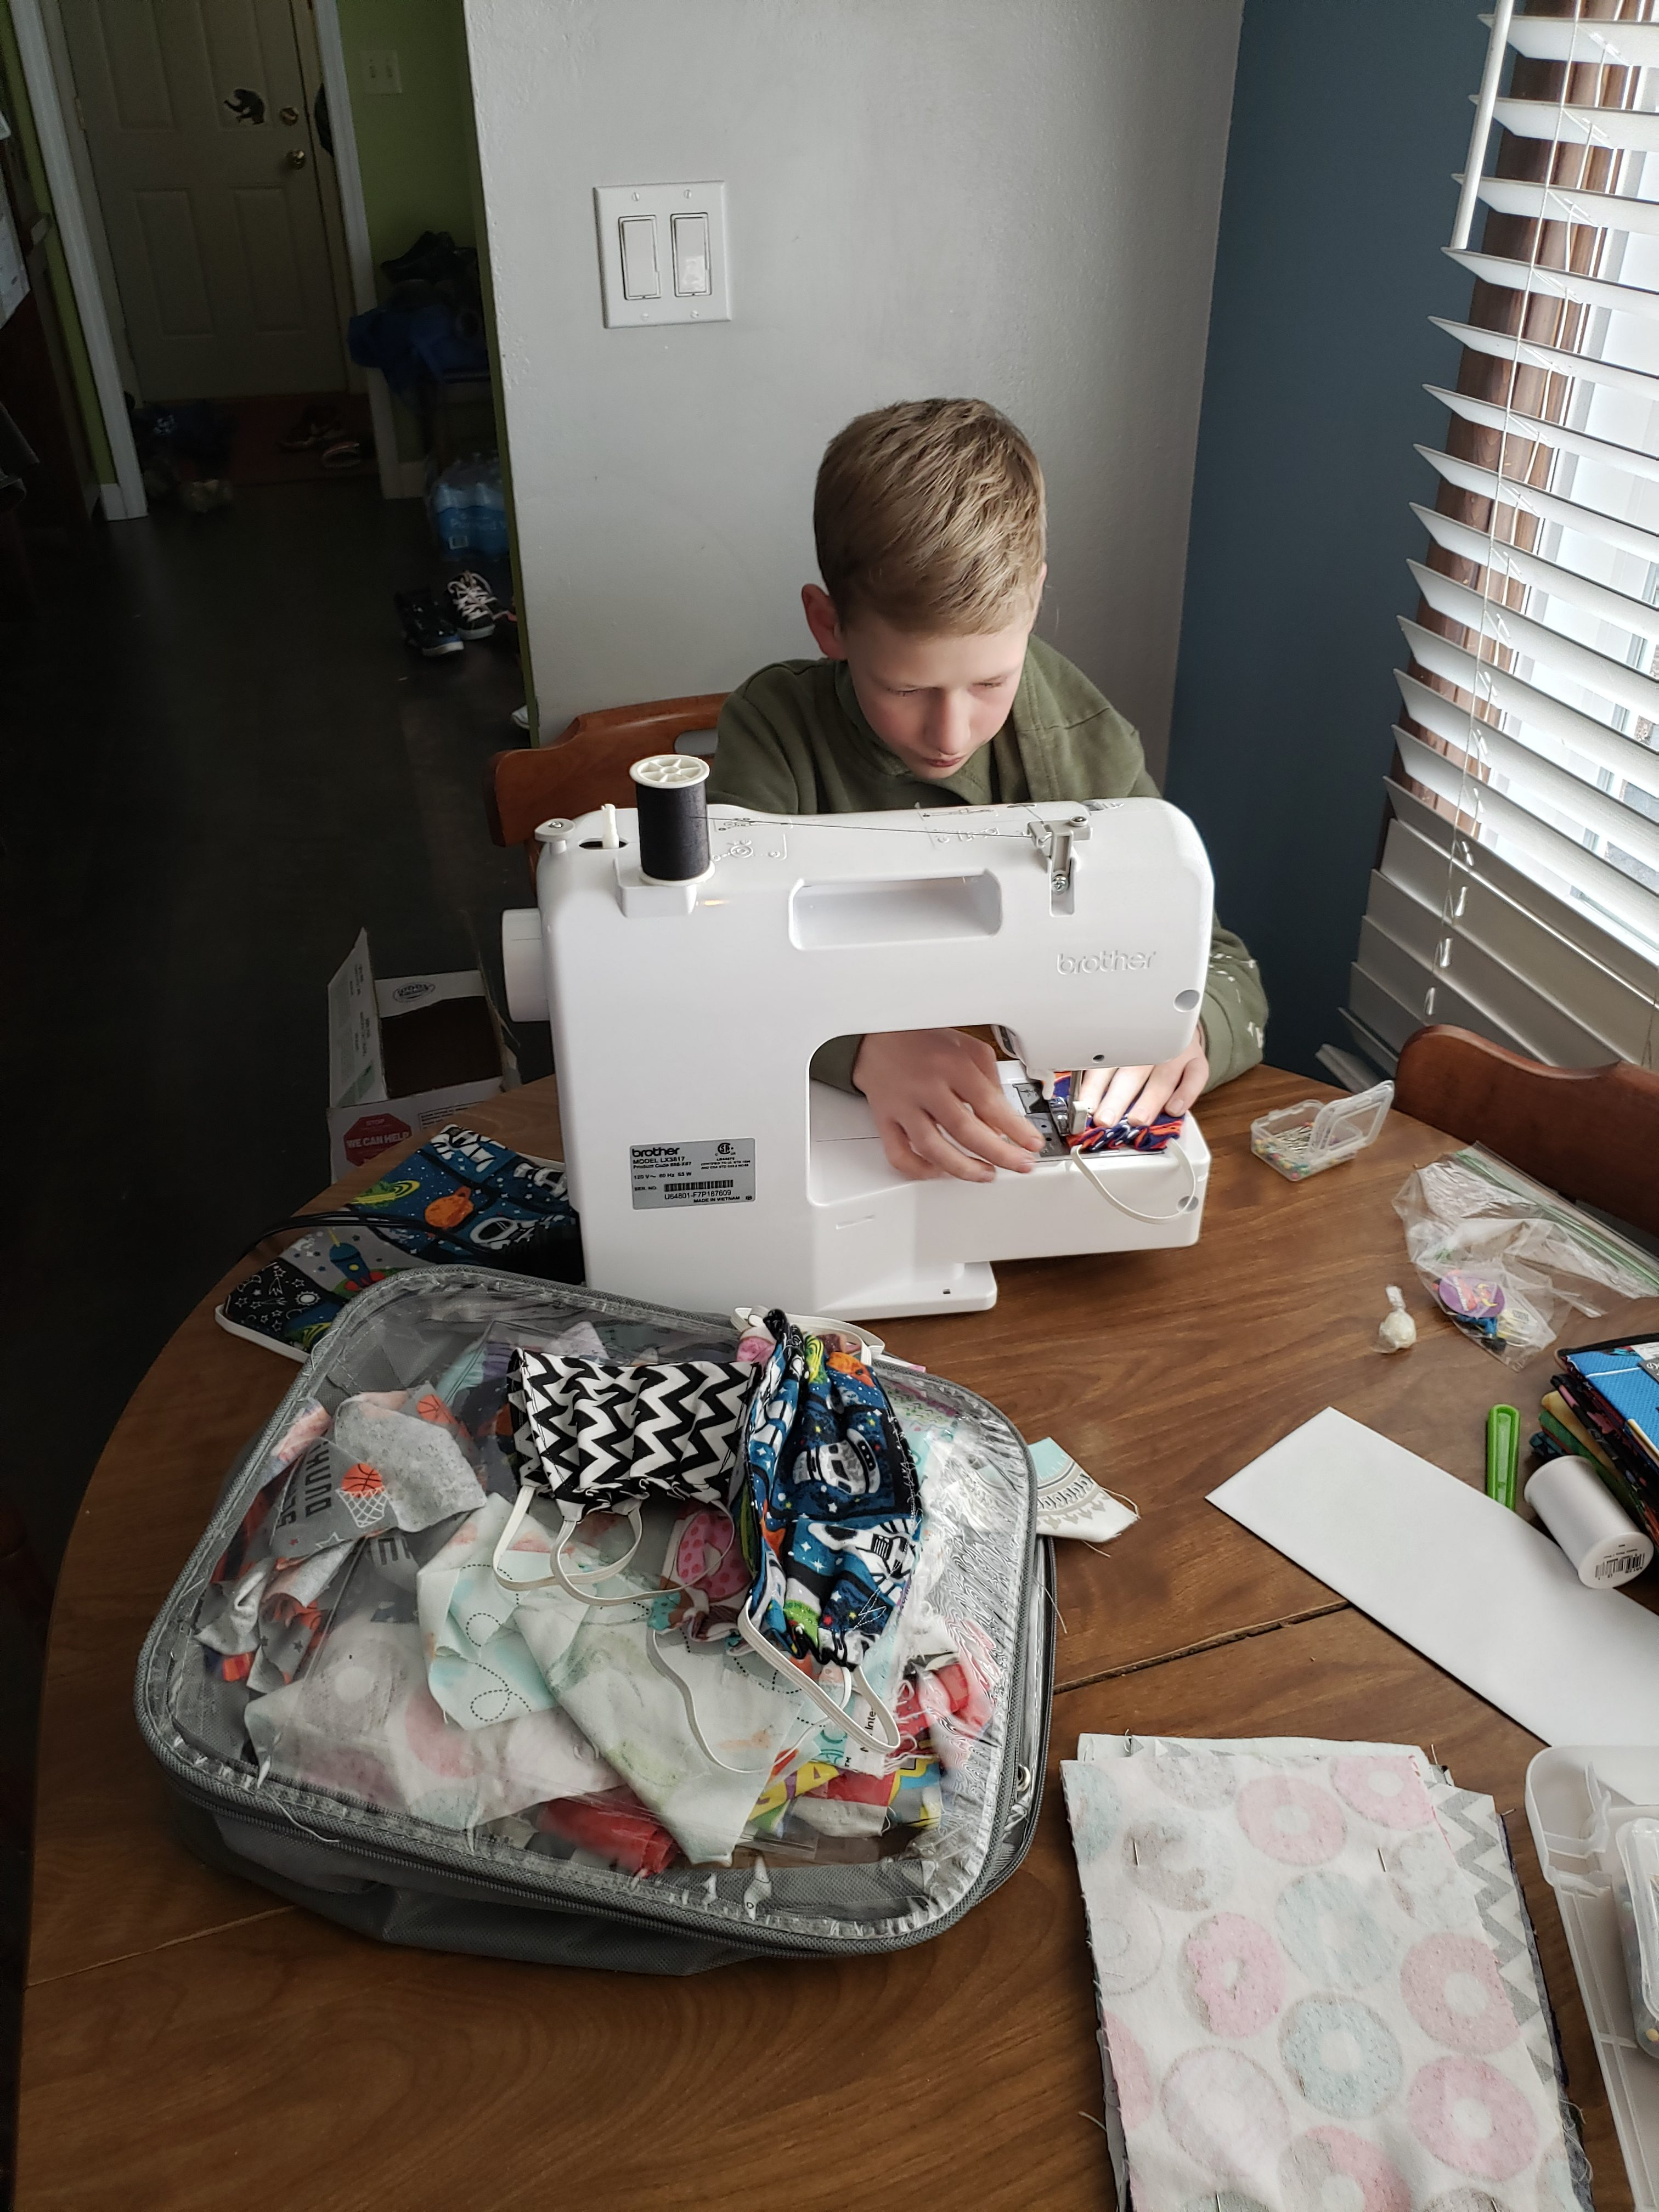 Colin at the sewing machine